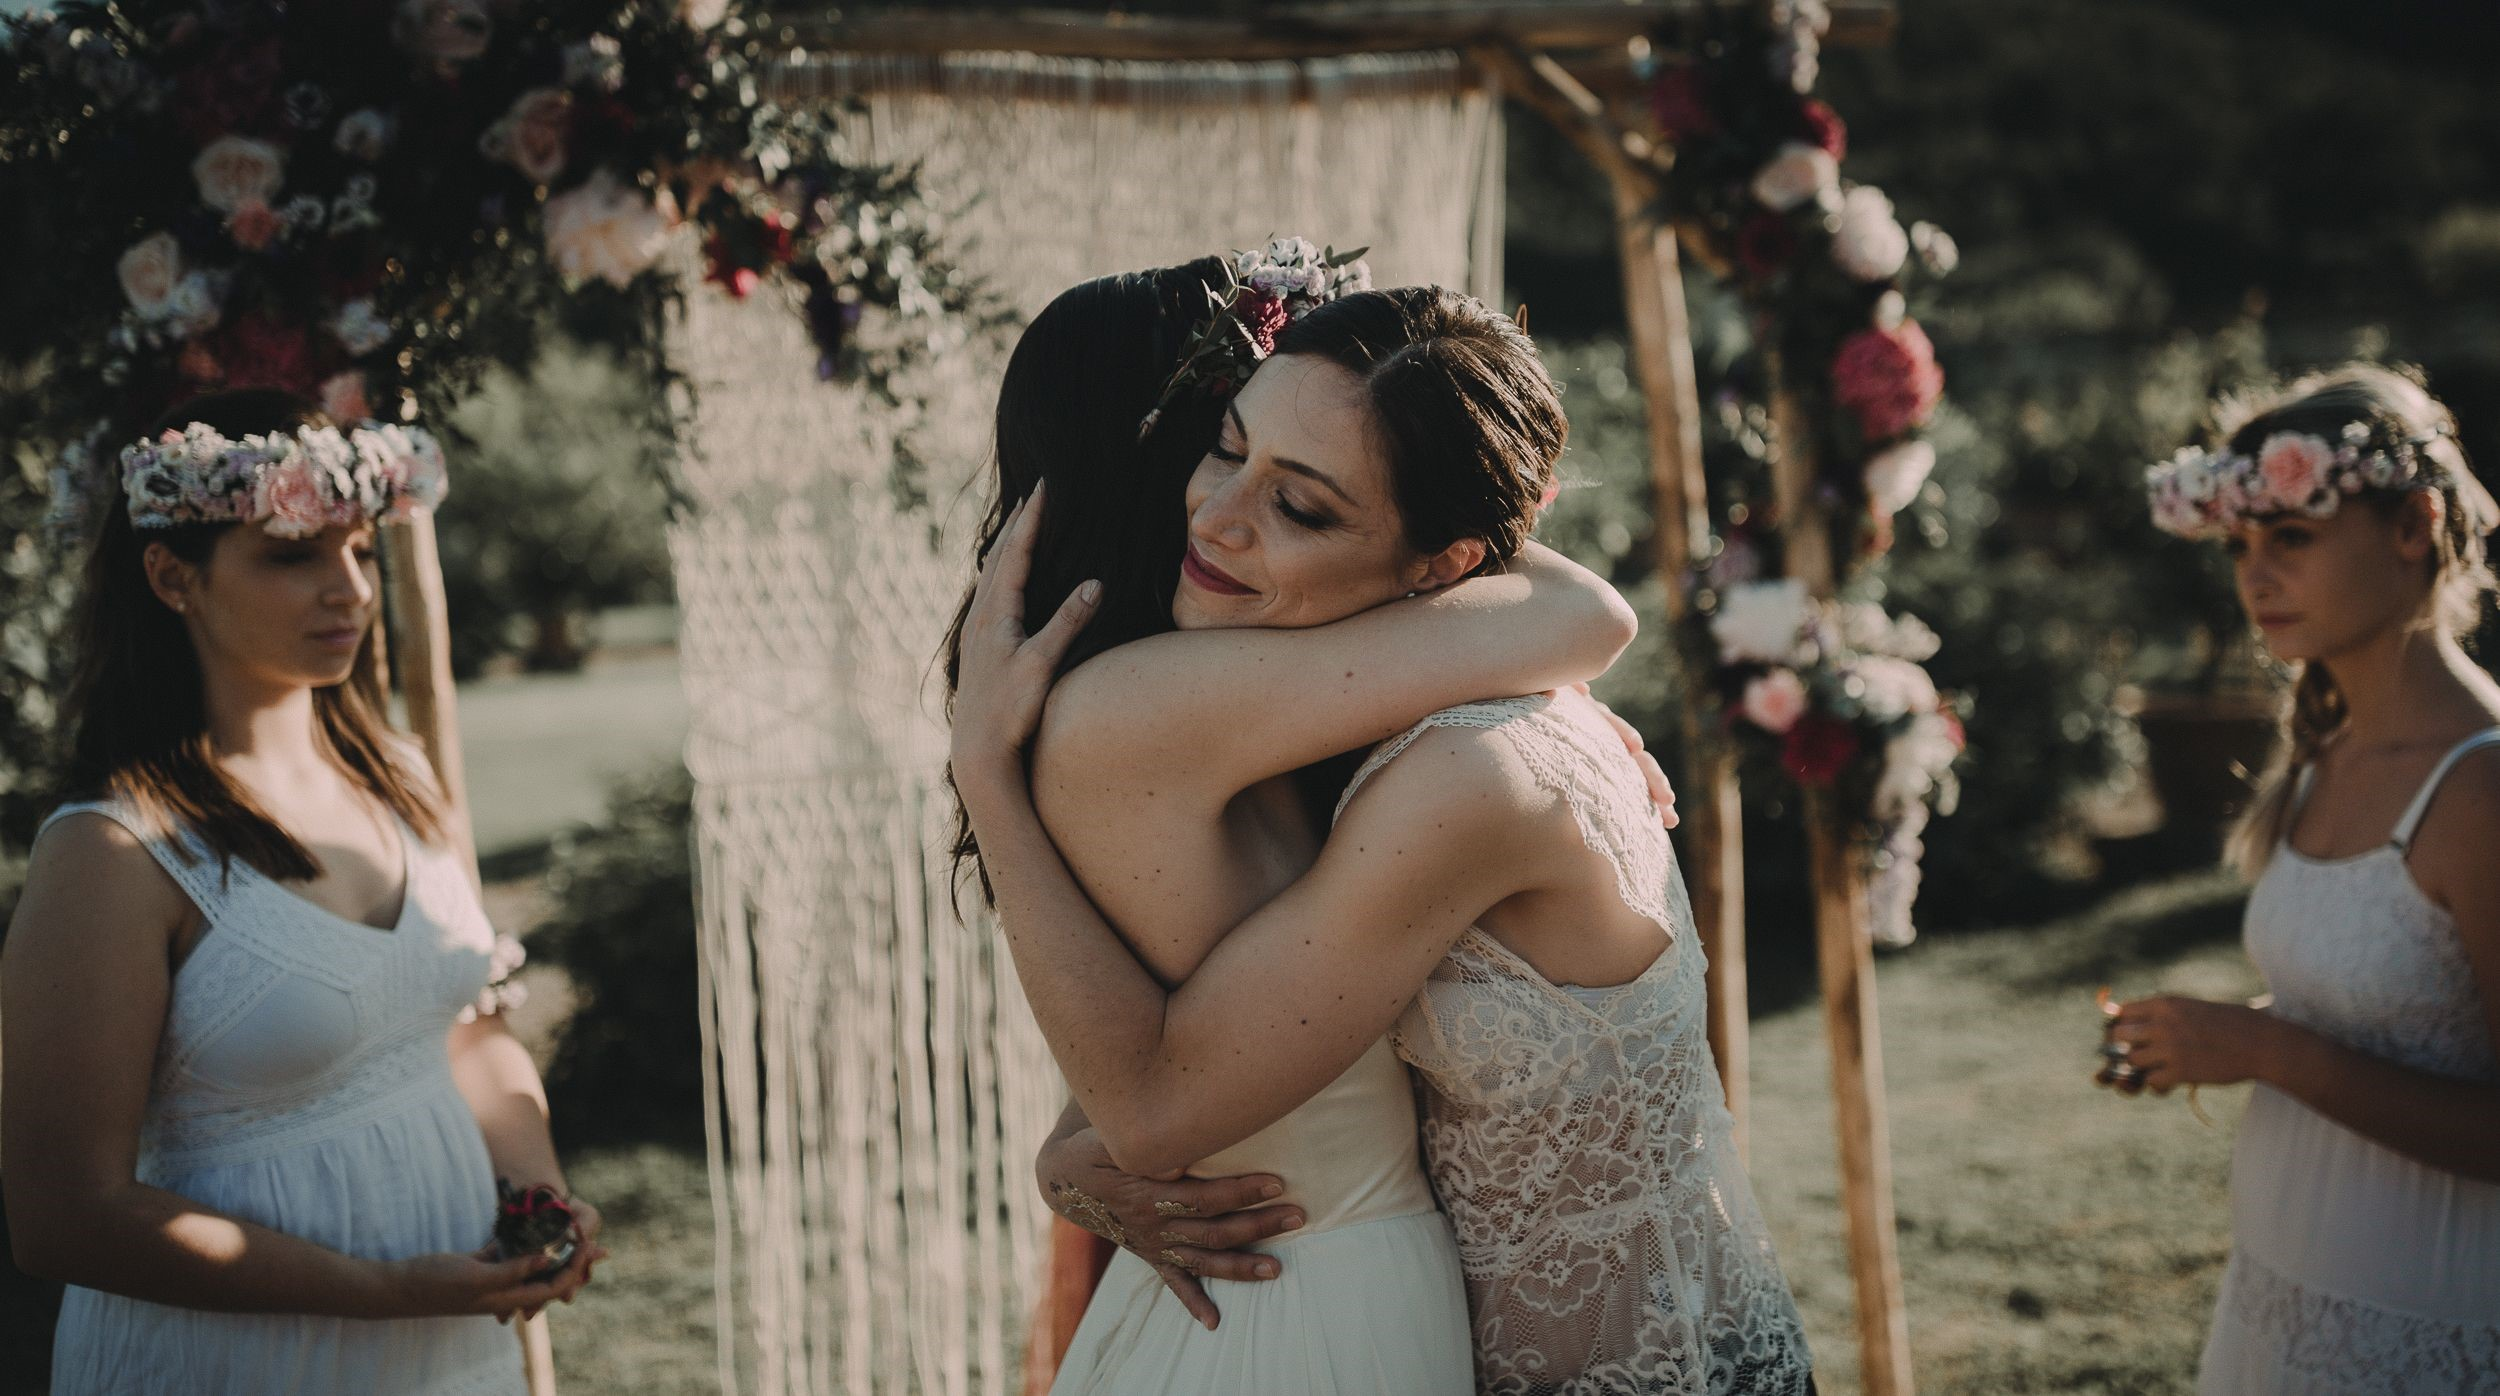 Federica and Claudia tender embrace during their marriage